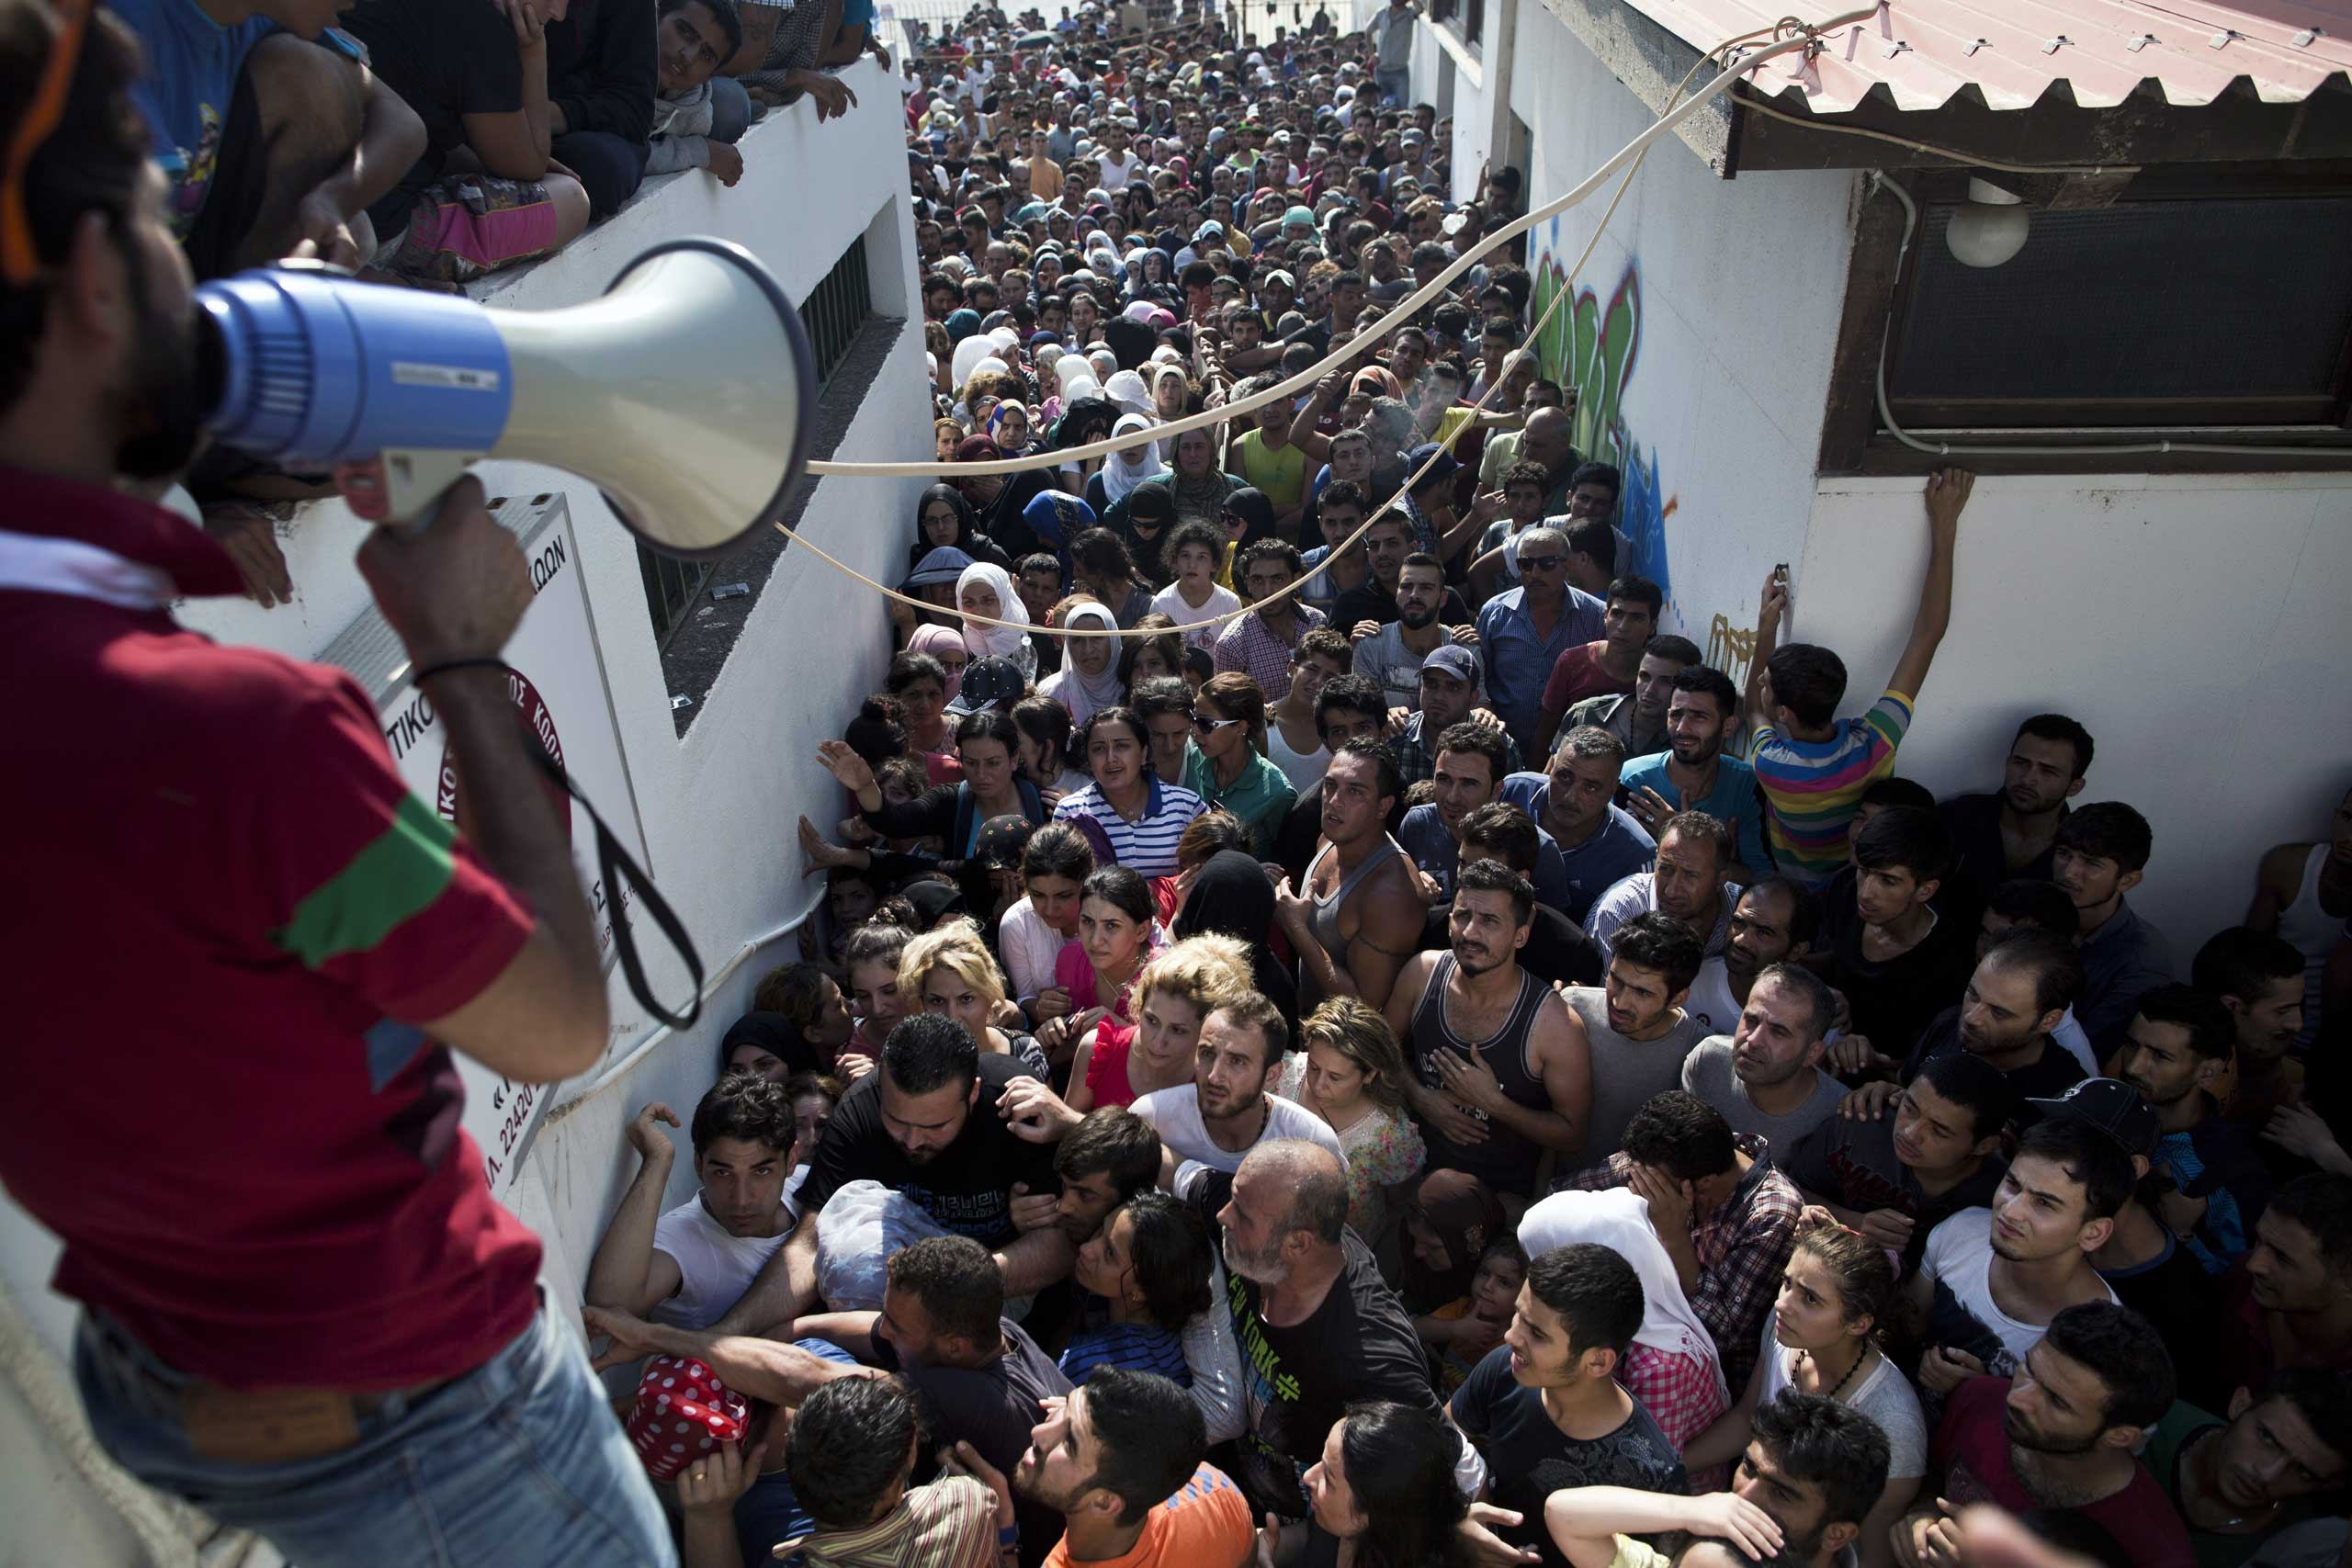 Migrants wait for a registration procedure at the stadium on the Greek island of Kos, Aug. 11, 2015.